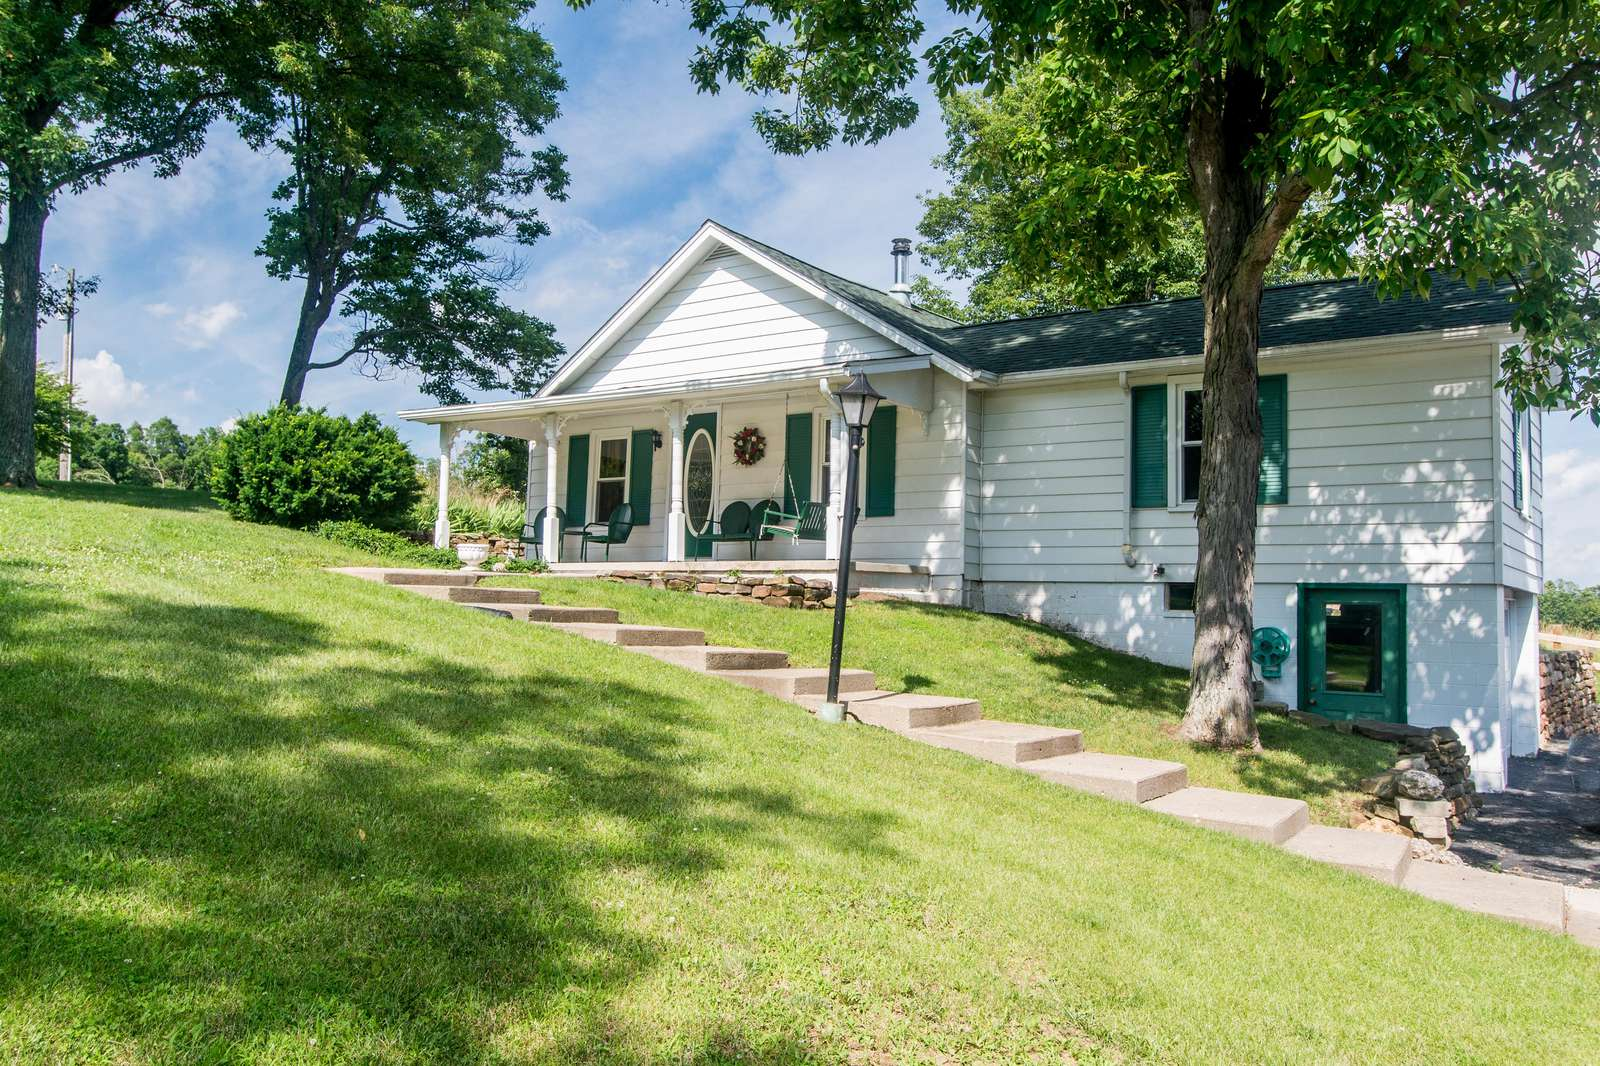 Painters Pointe Vacation Rental - property